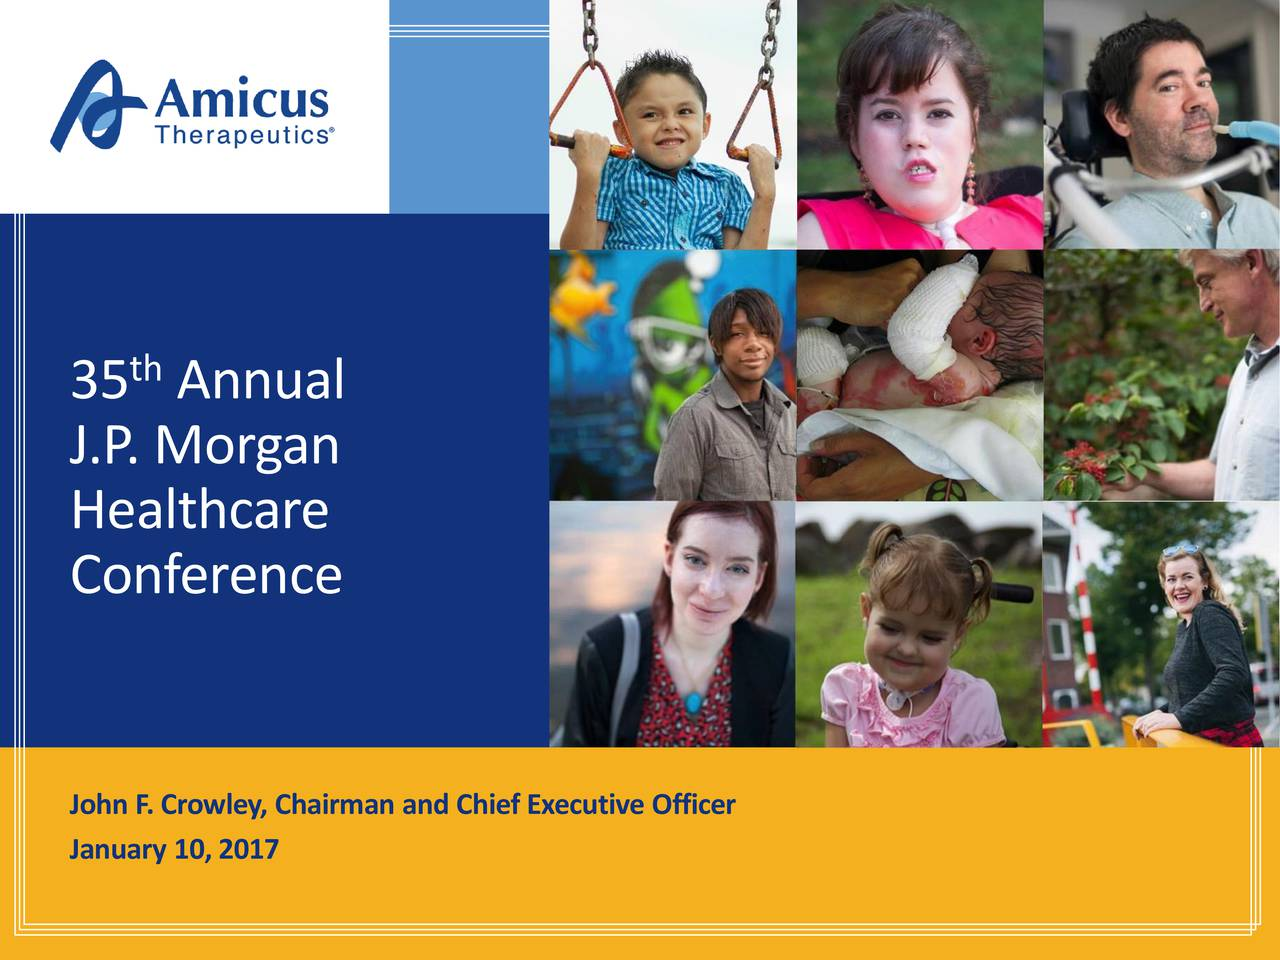 J.P. Morgan Healthcare Conference John F. Crowley, Chairman and Chief Executive Officer January 10,2017